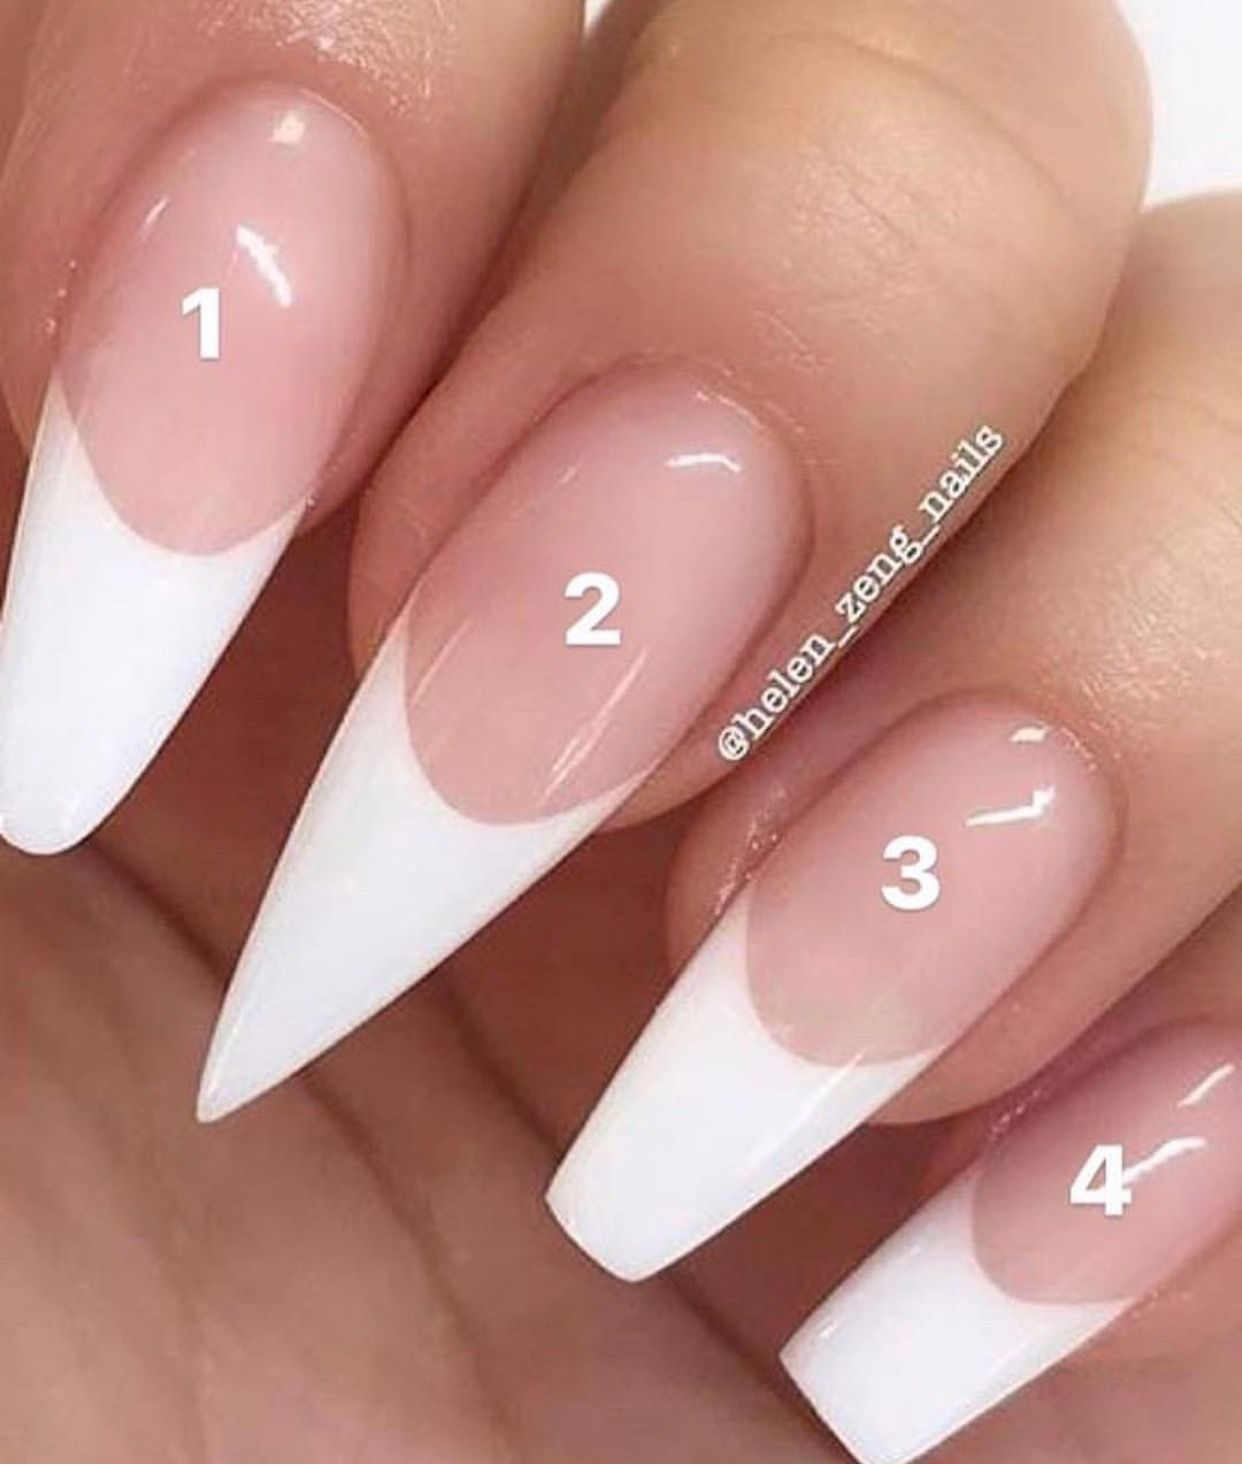 Nail Art Acrylic Nail Styles Different Types Of Acrylic Nails Coffin French Tip Acrylic Nails Acrylic Nail Types Acrylic Nail Shapes